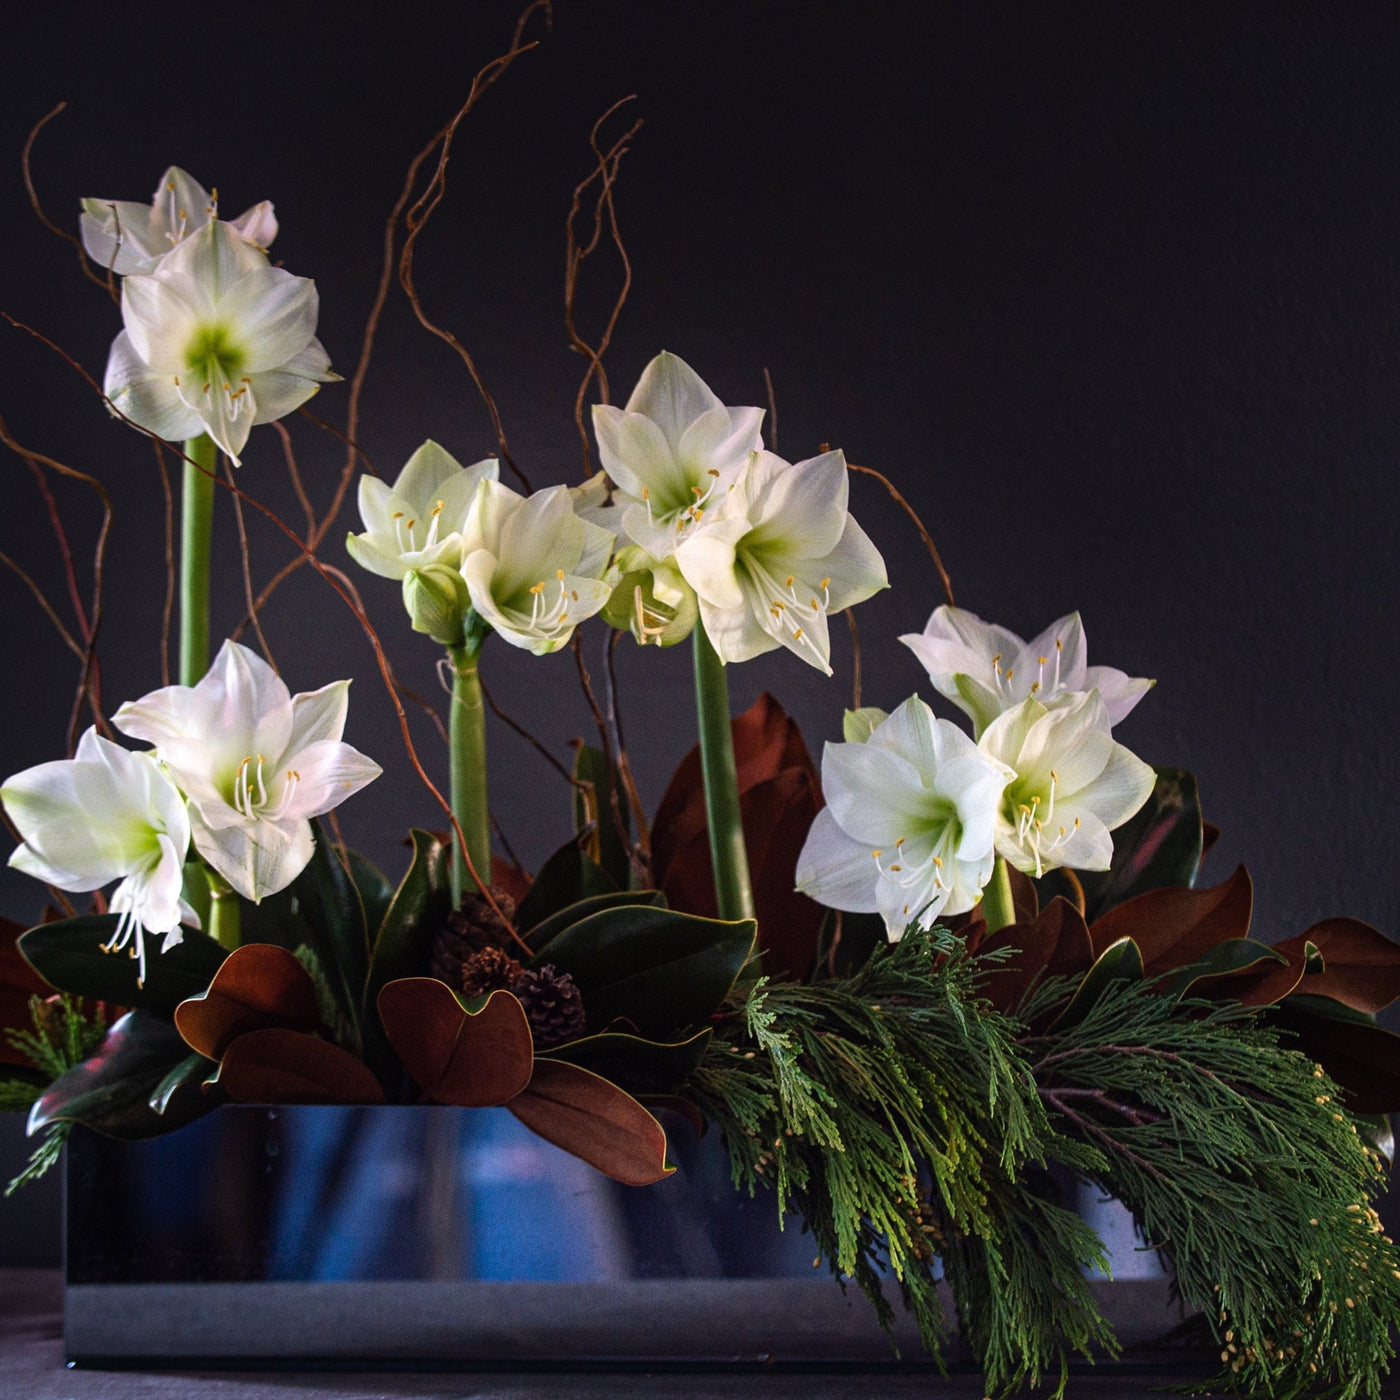 Amaryllis, magnolia leaves and curly willow with holiday greens in a mirrored container.